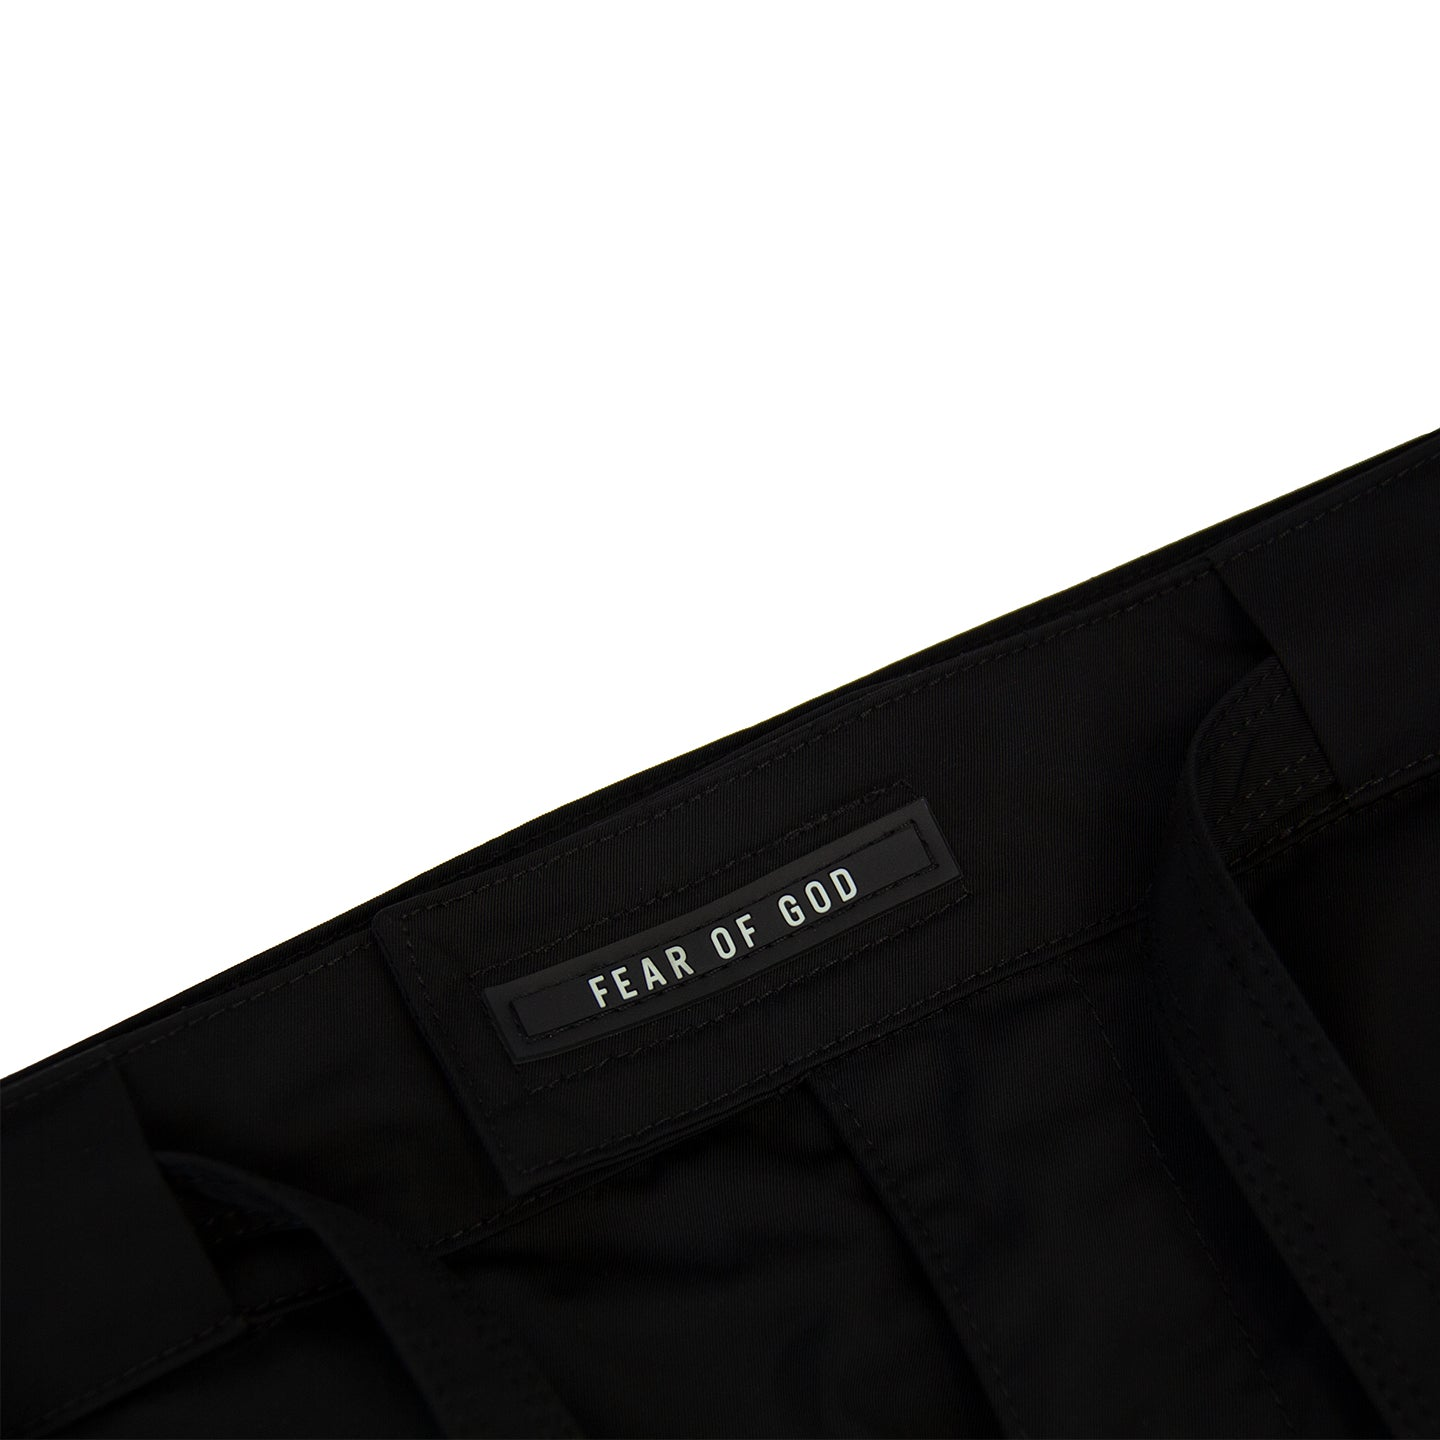 FEAR OF GOD 6TH COLLECTION NYLON CARGO SNAP PANT